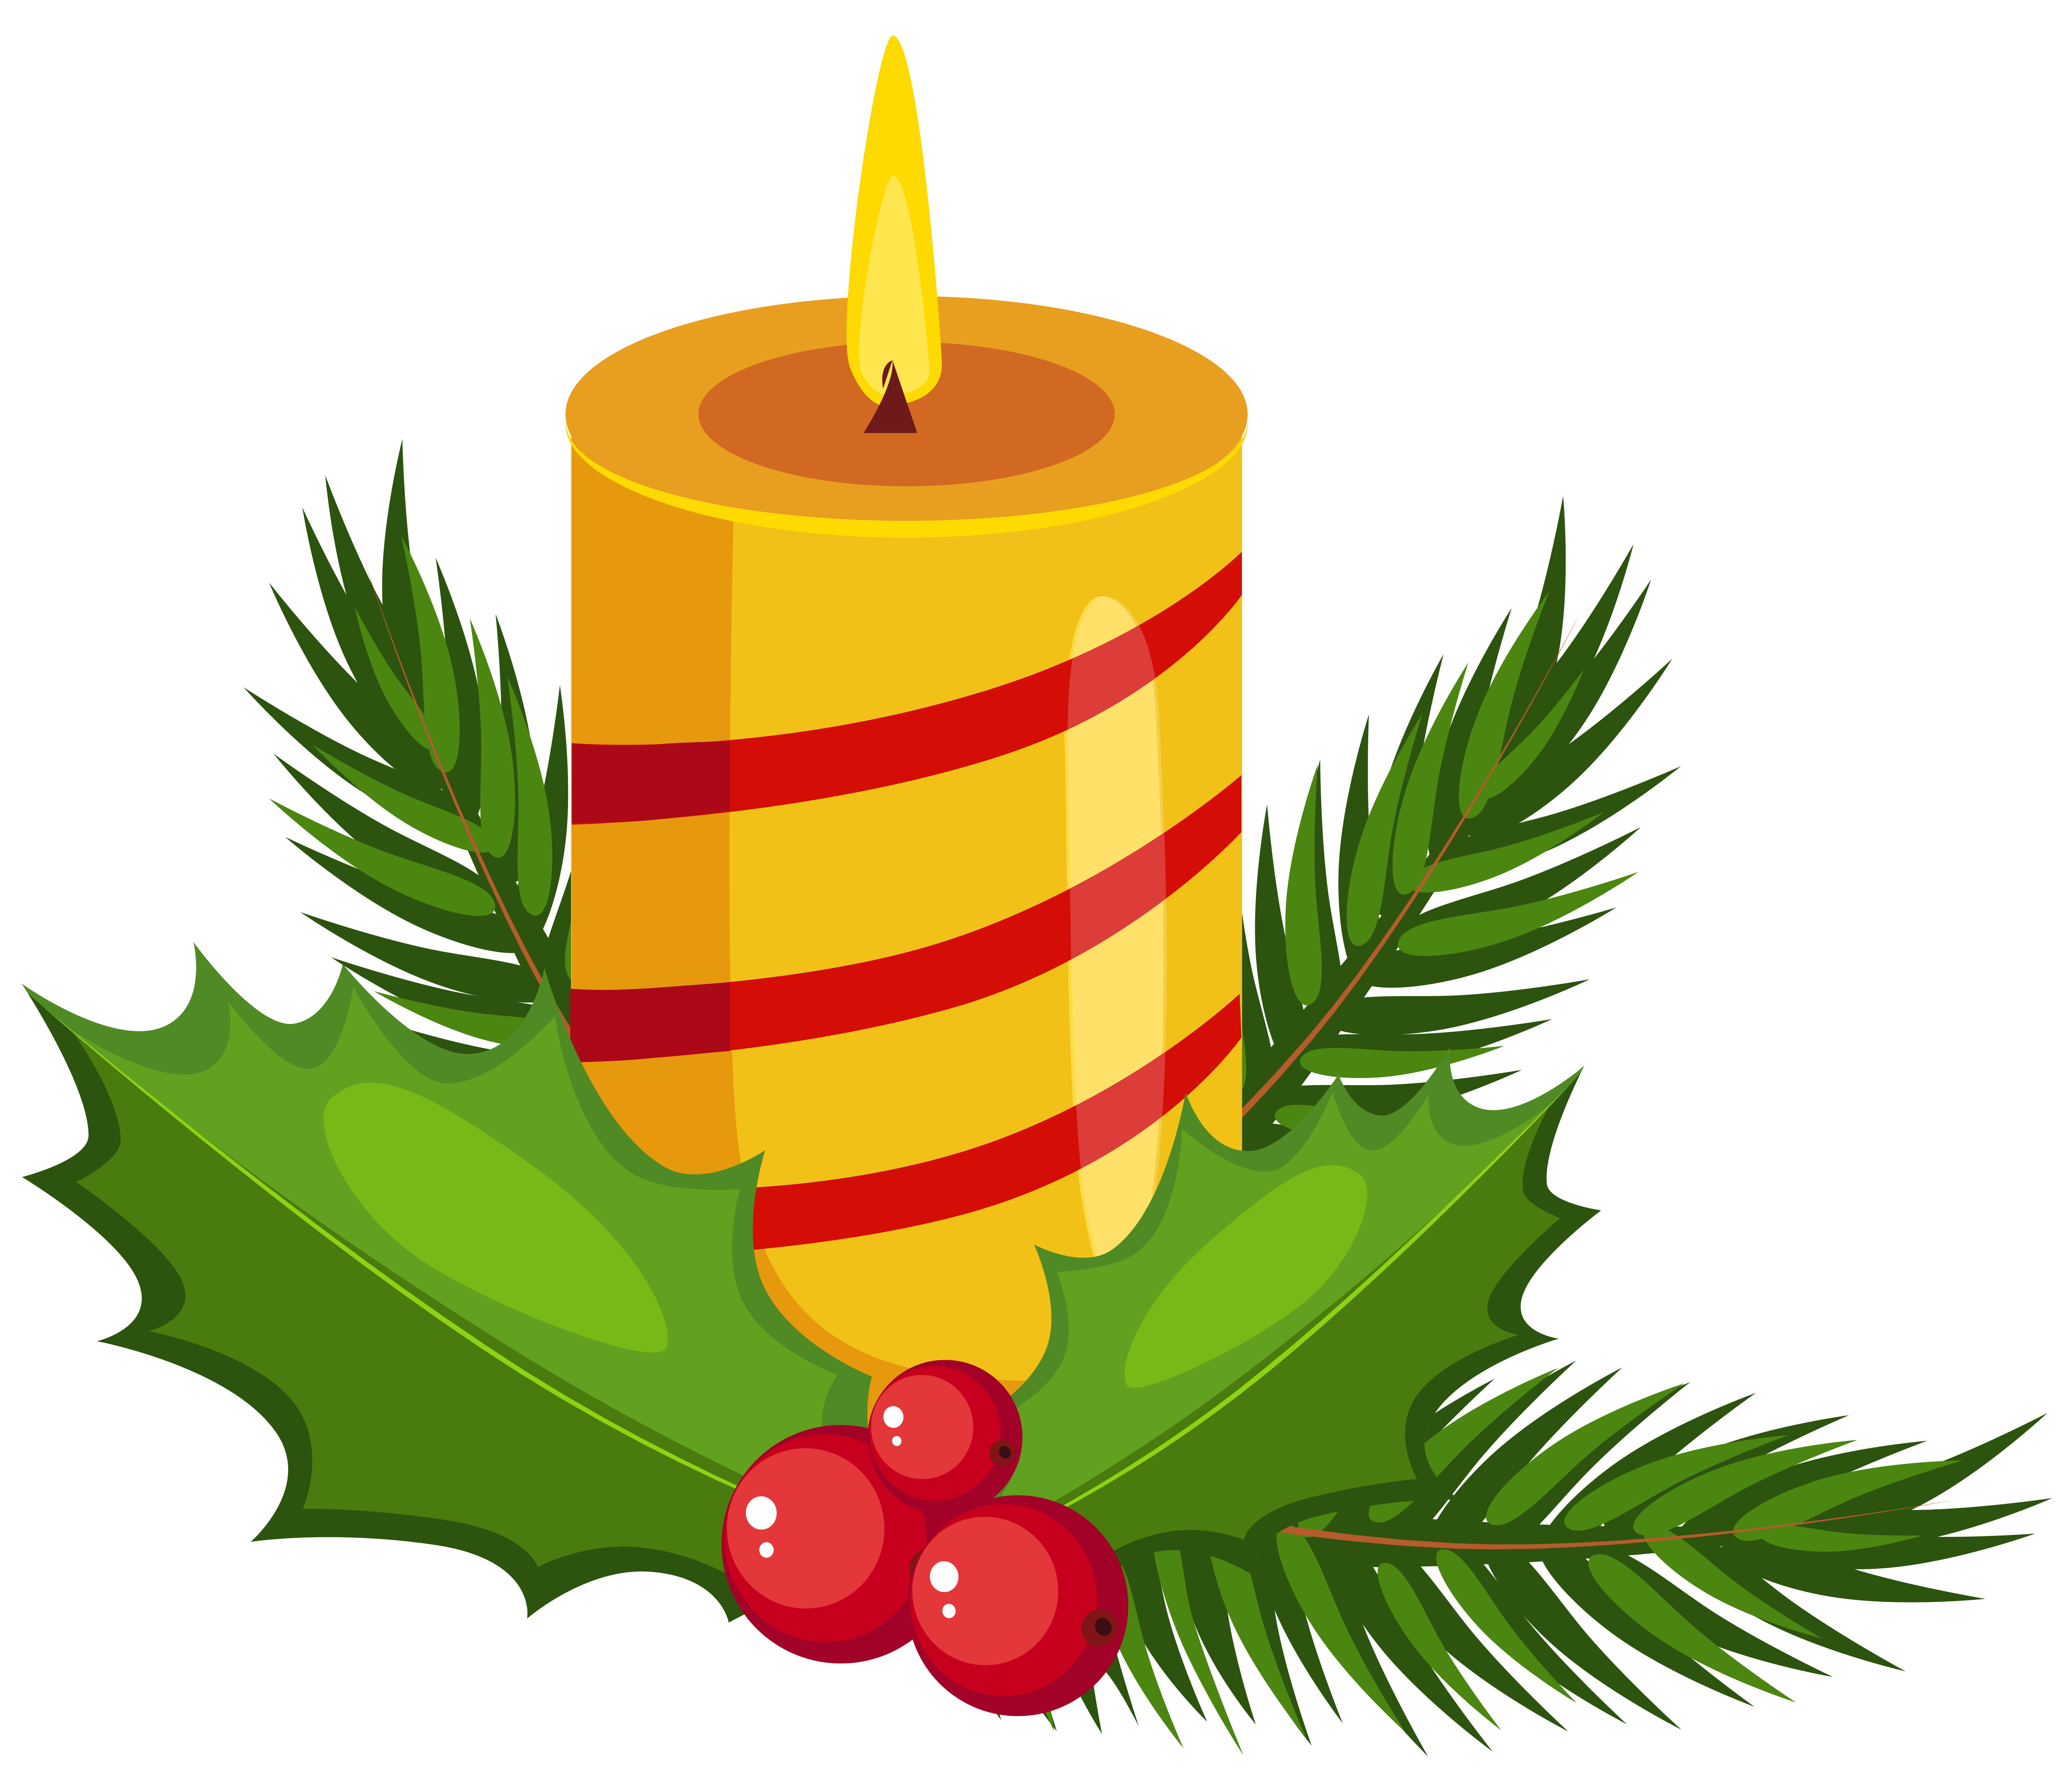 Christmas candles clipart best